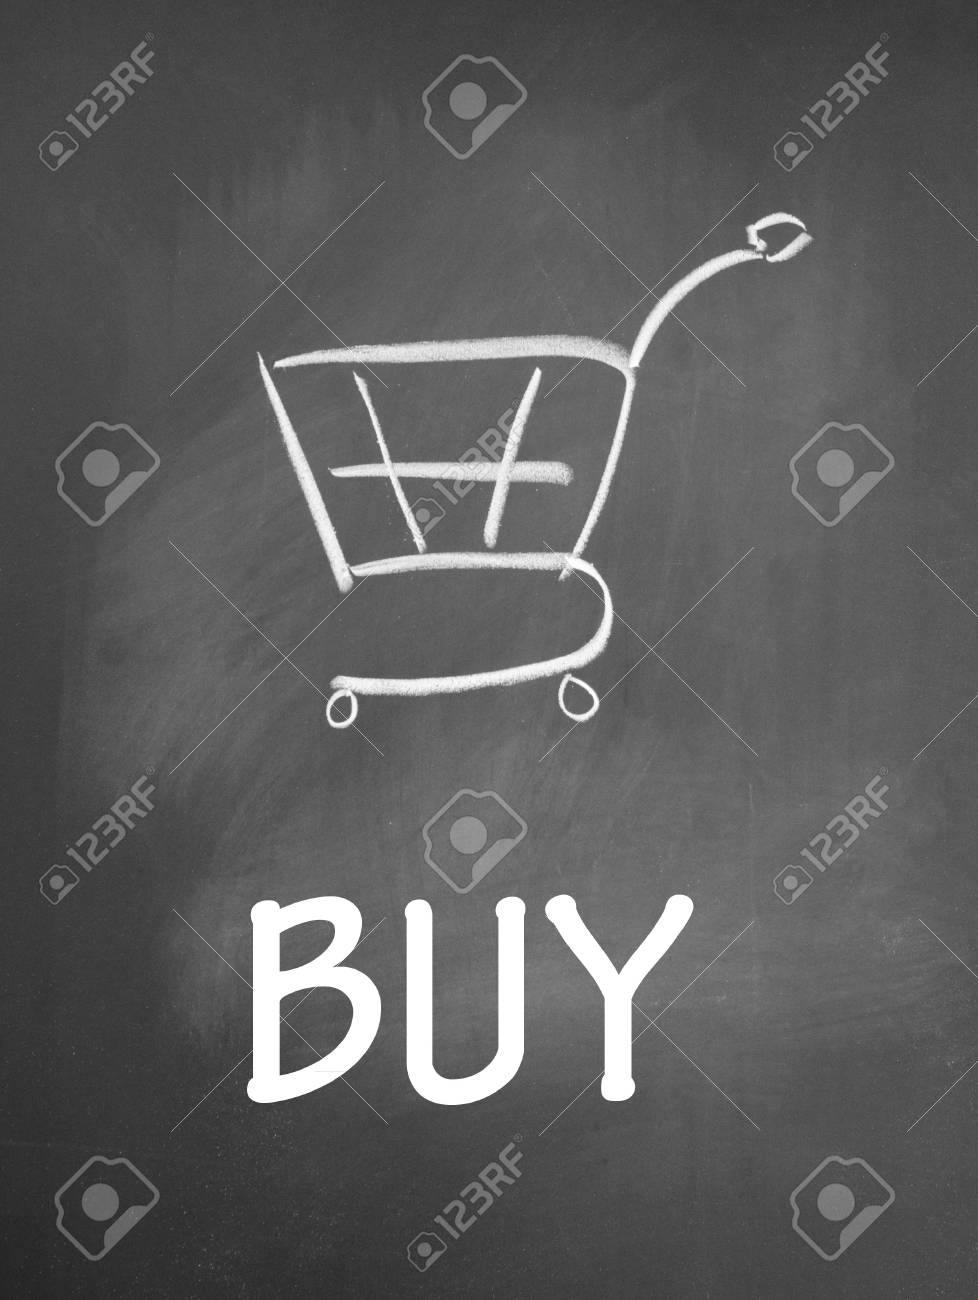 buy and shopping chat  symbol Stock Photo - 13712200